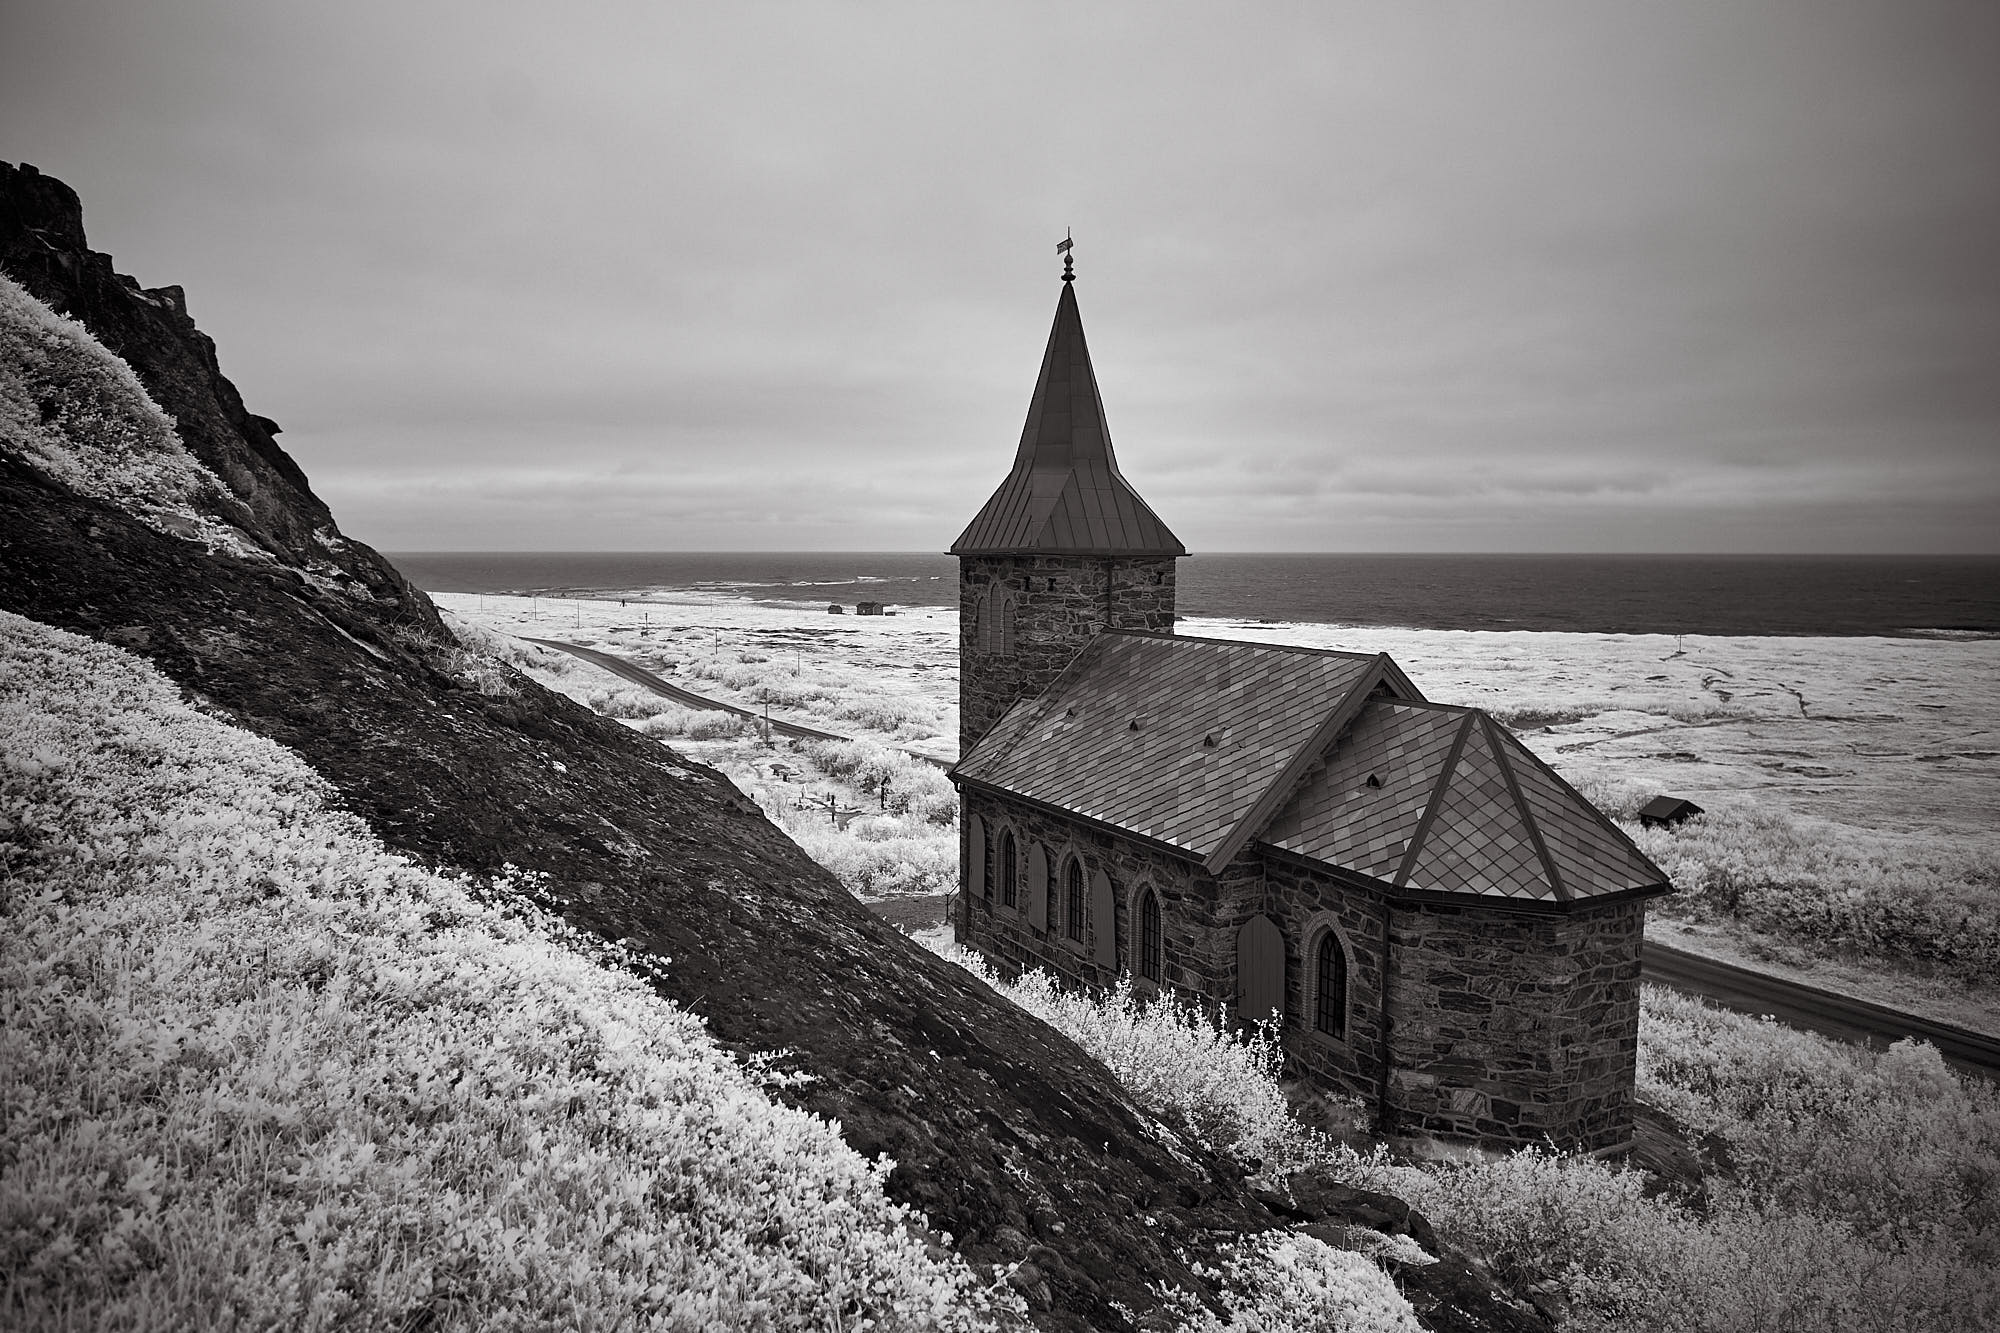 The chapel with the barents sea in the background / Fujifilm X-T1  ISO 200  1/30s  f/4  14mm  Infrared